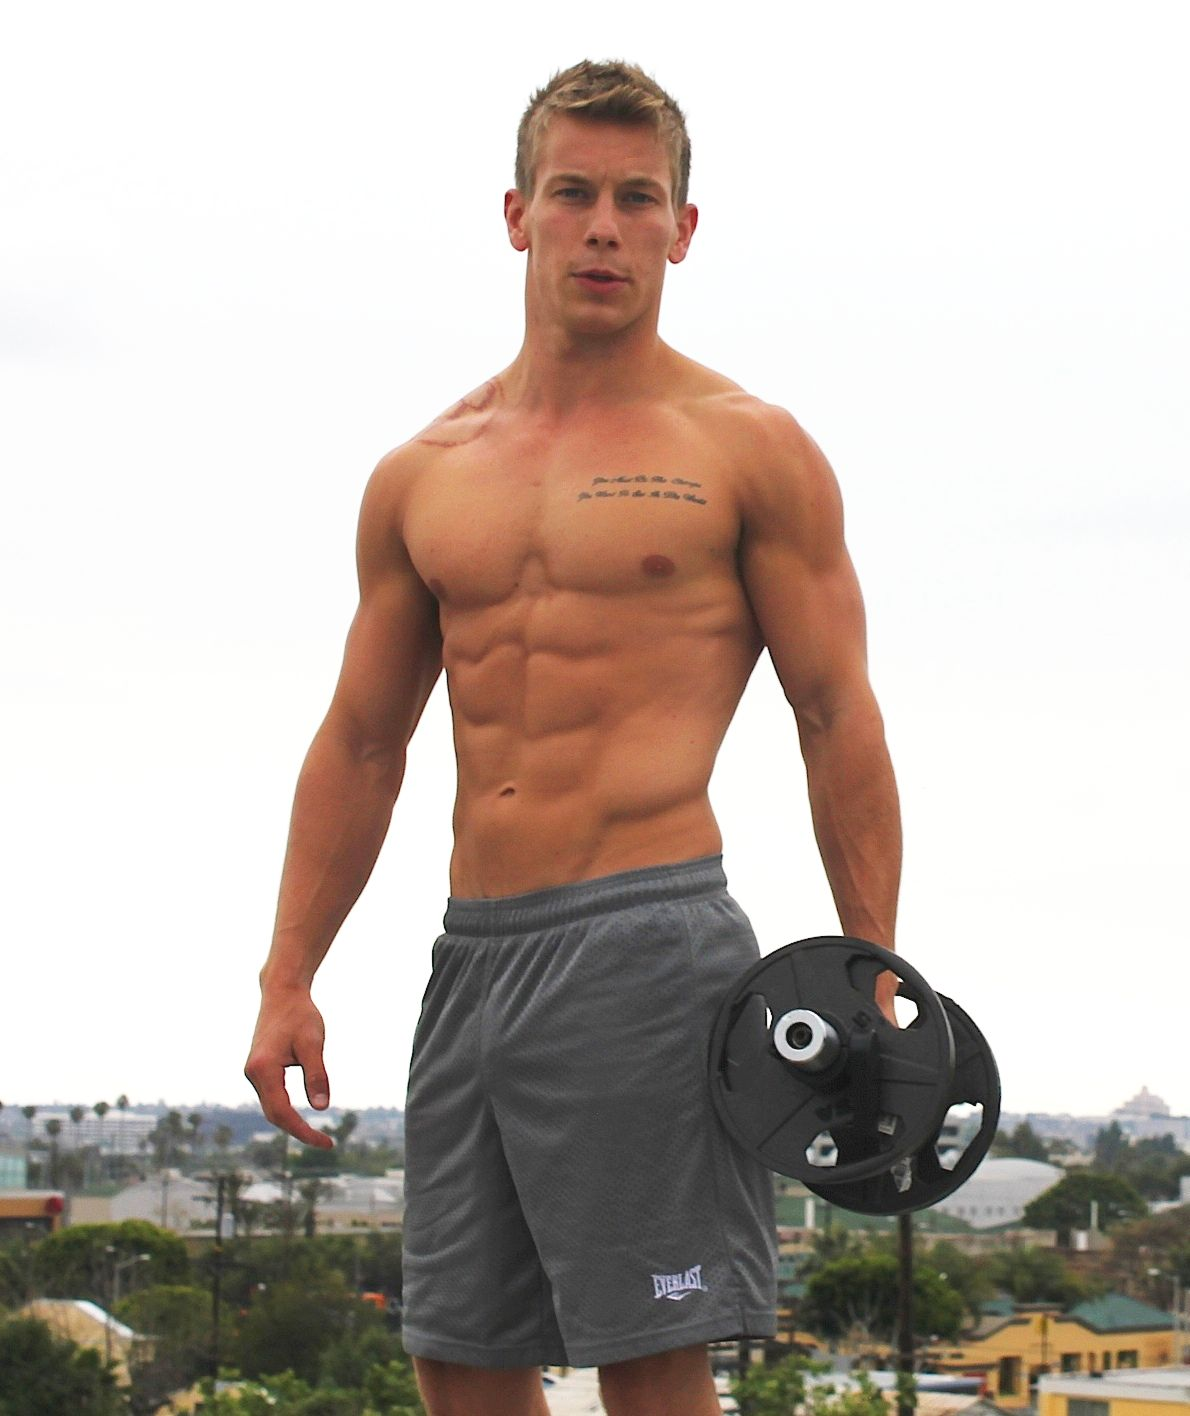 Los Angeles Personal Trainer Derek Opperman